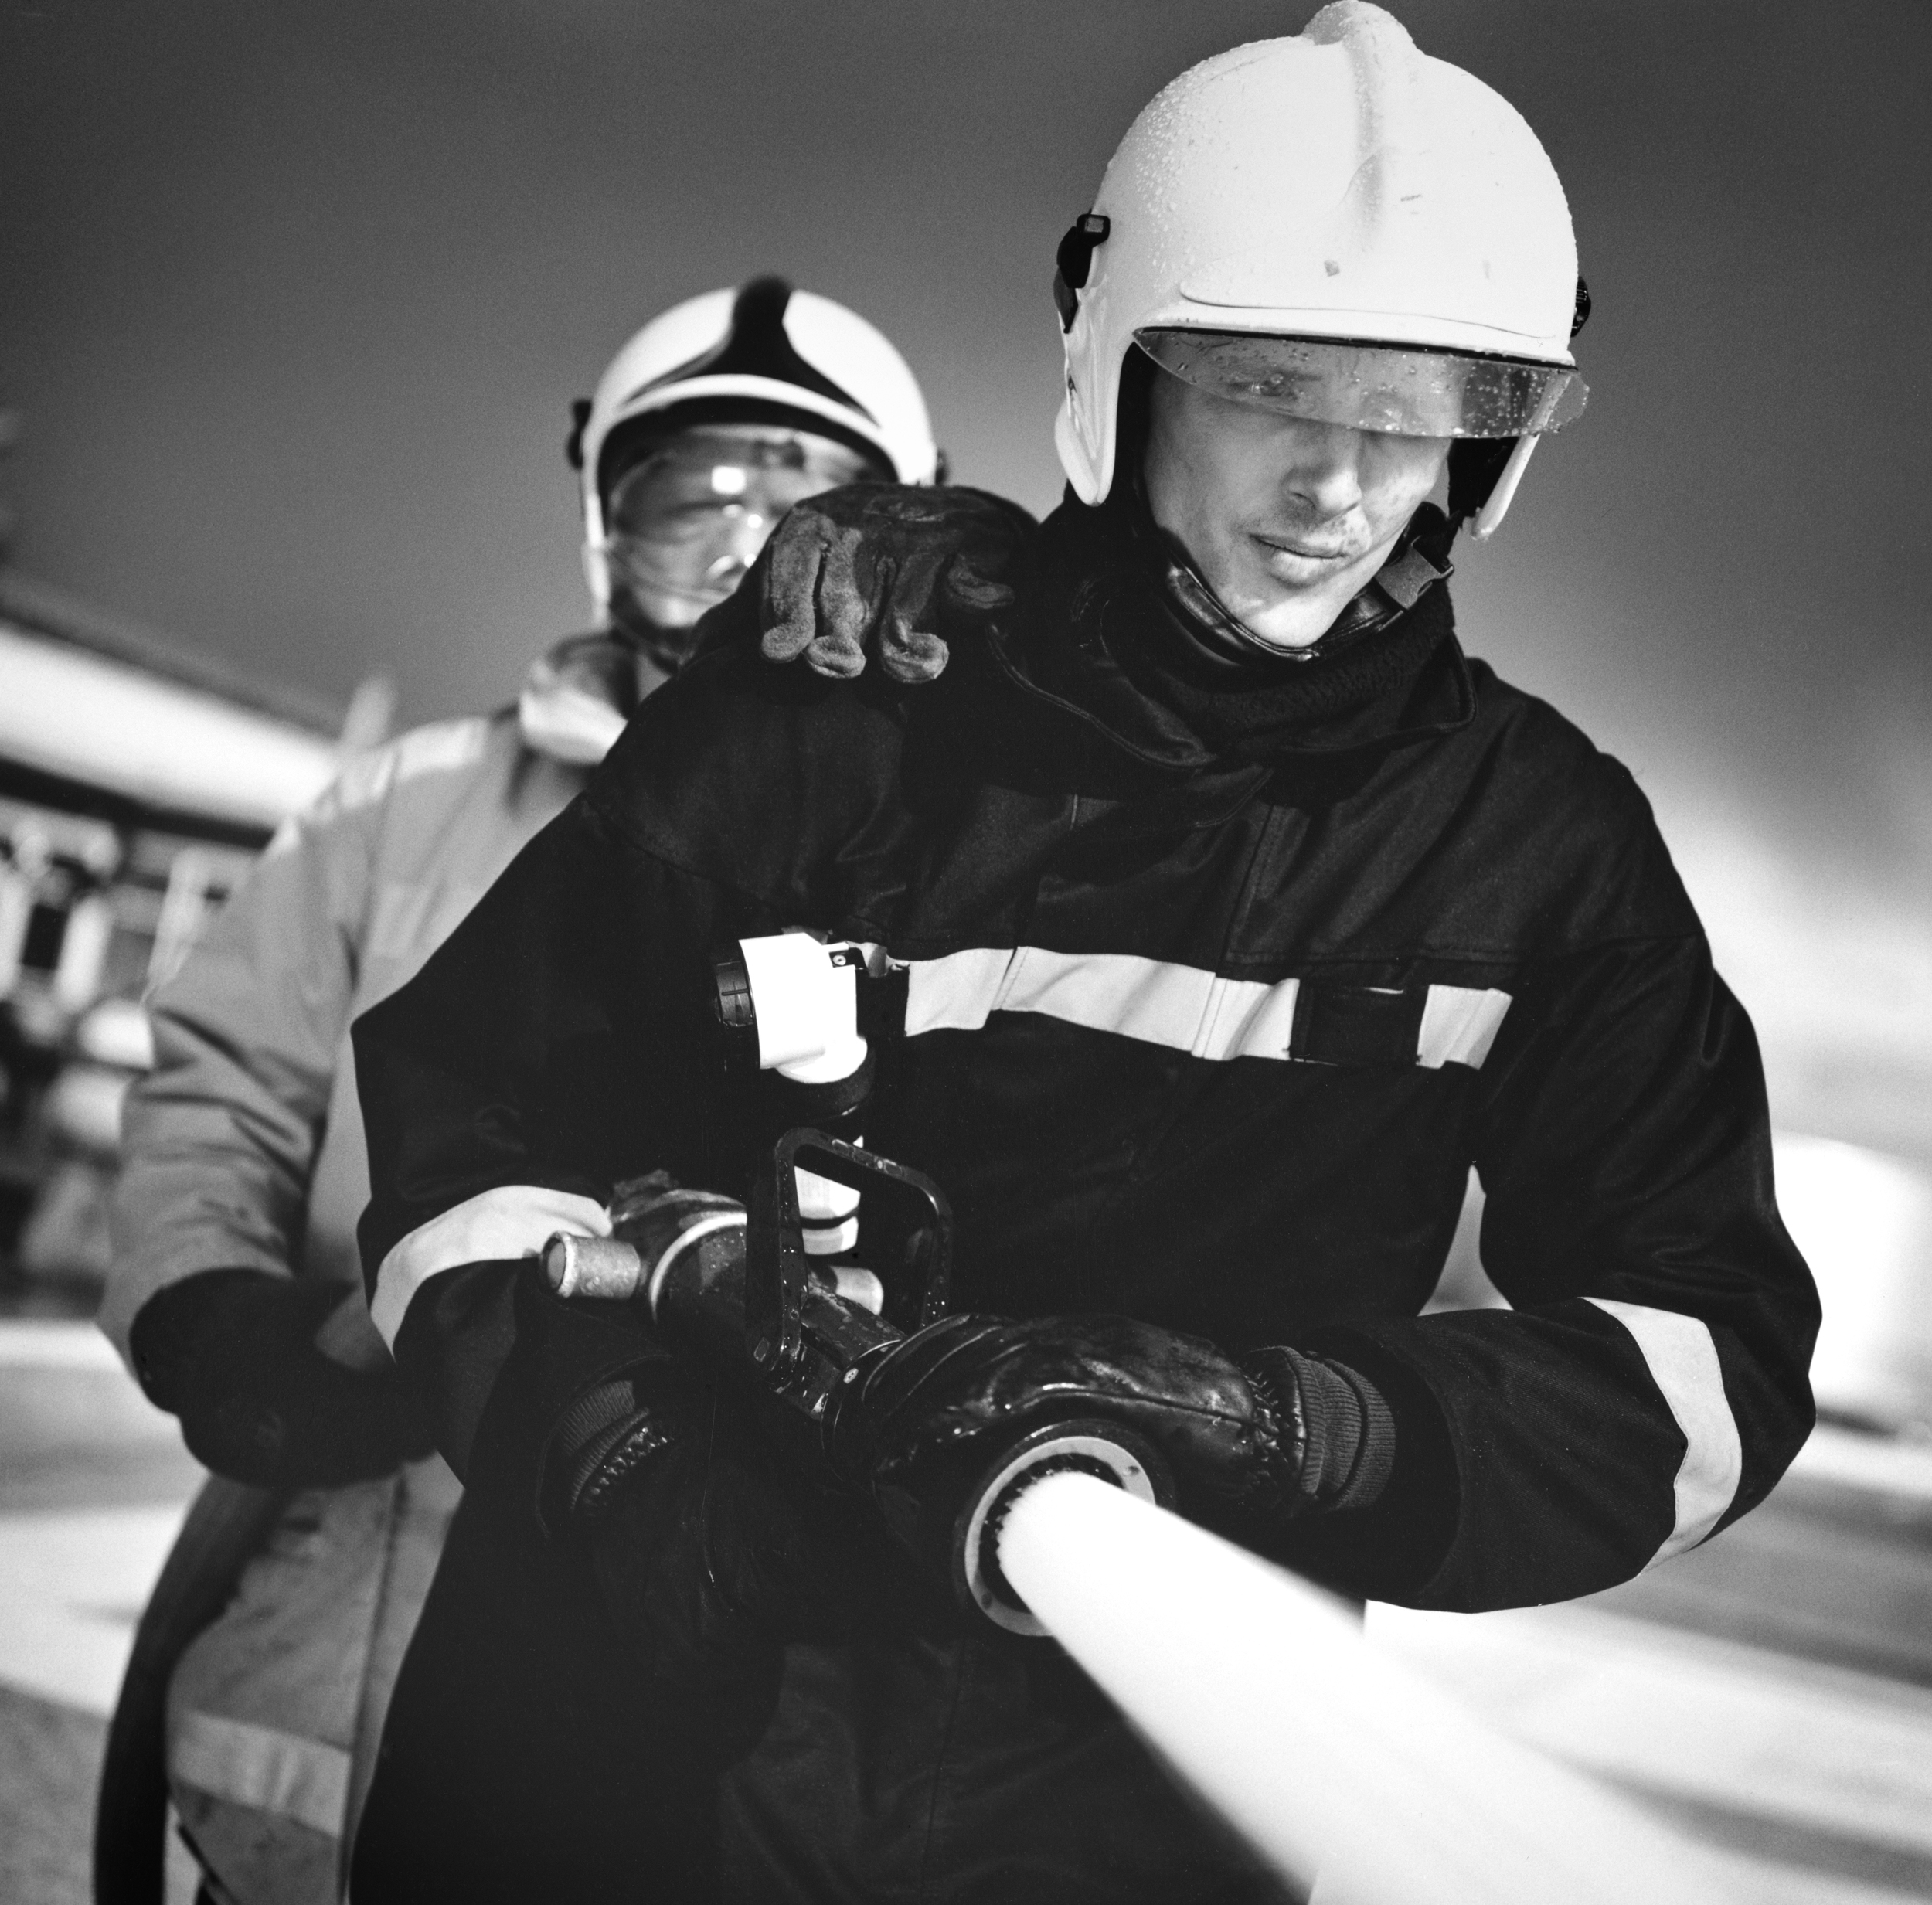 Firecrew, London Heliport